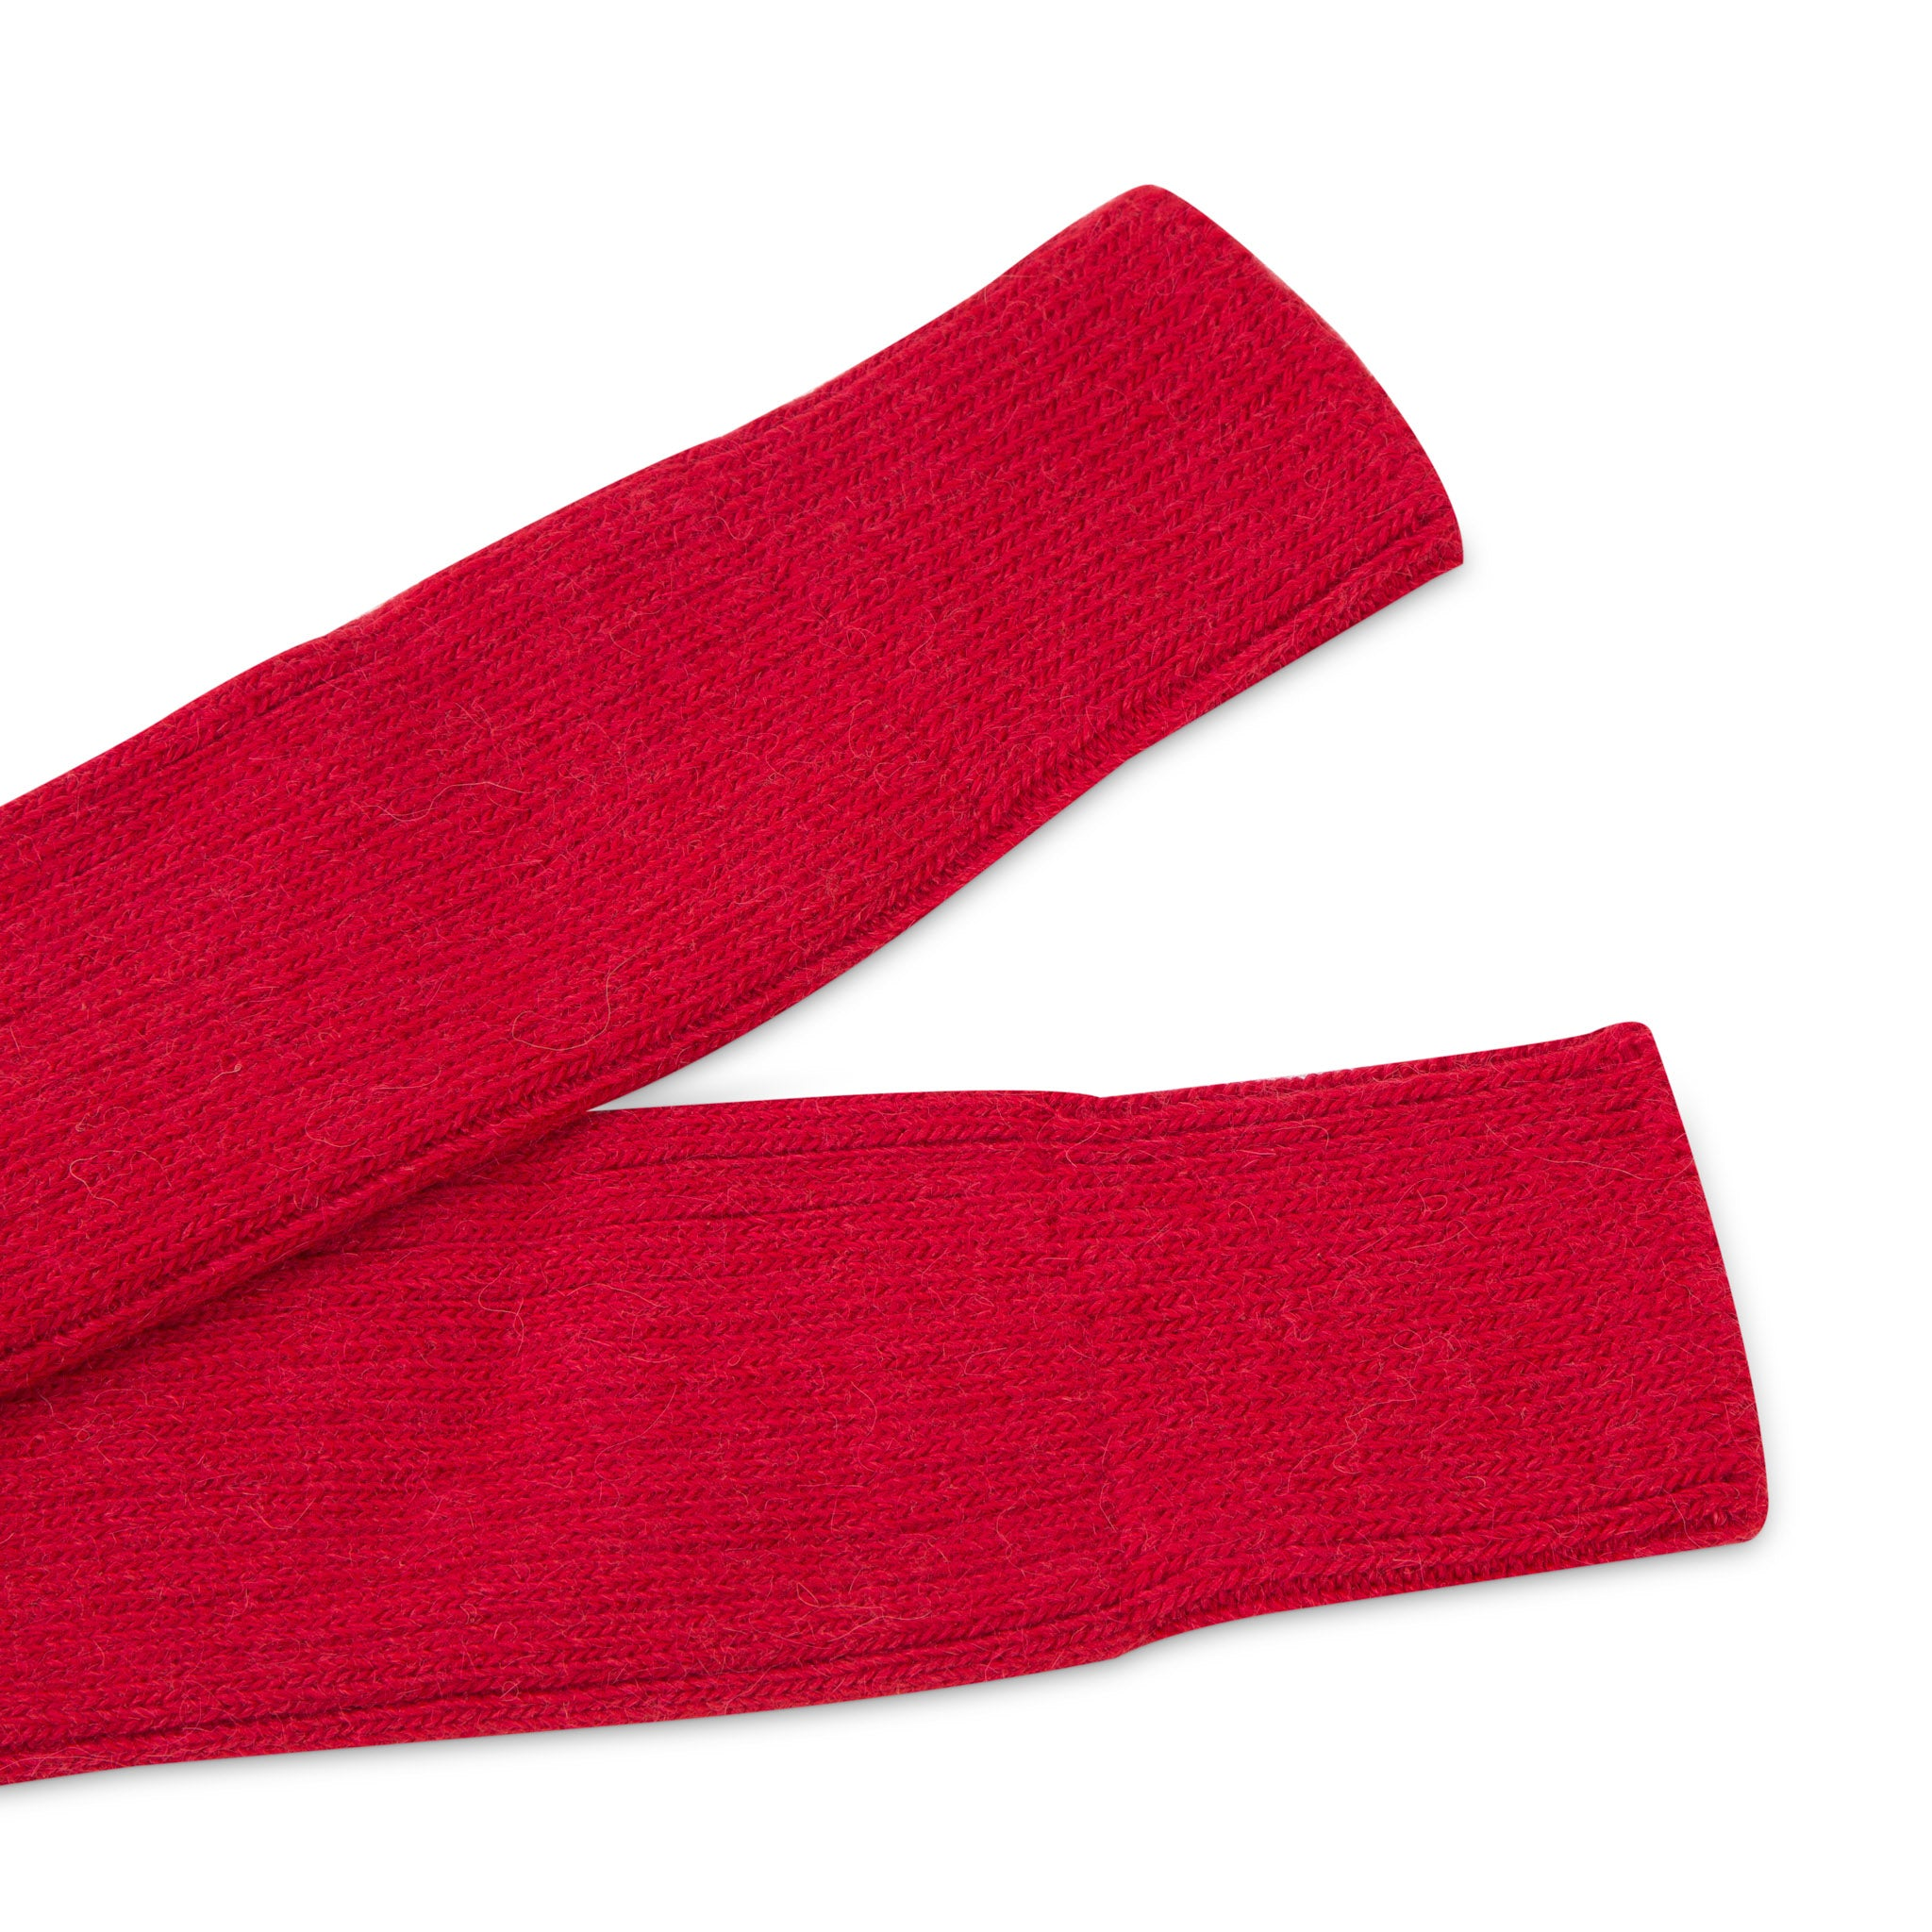 Alpaca walking socks - Rustic Red | Chaussettes de marche en alpaga - Rouge